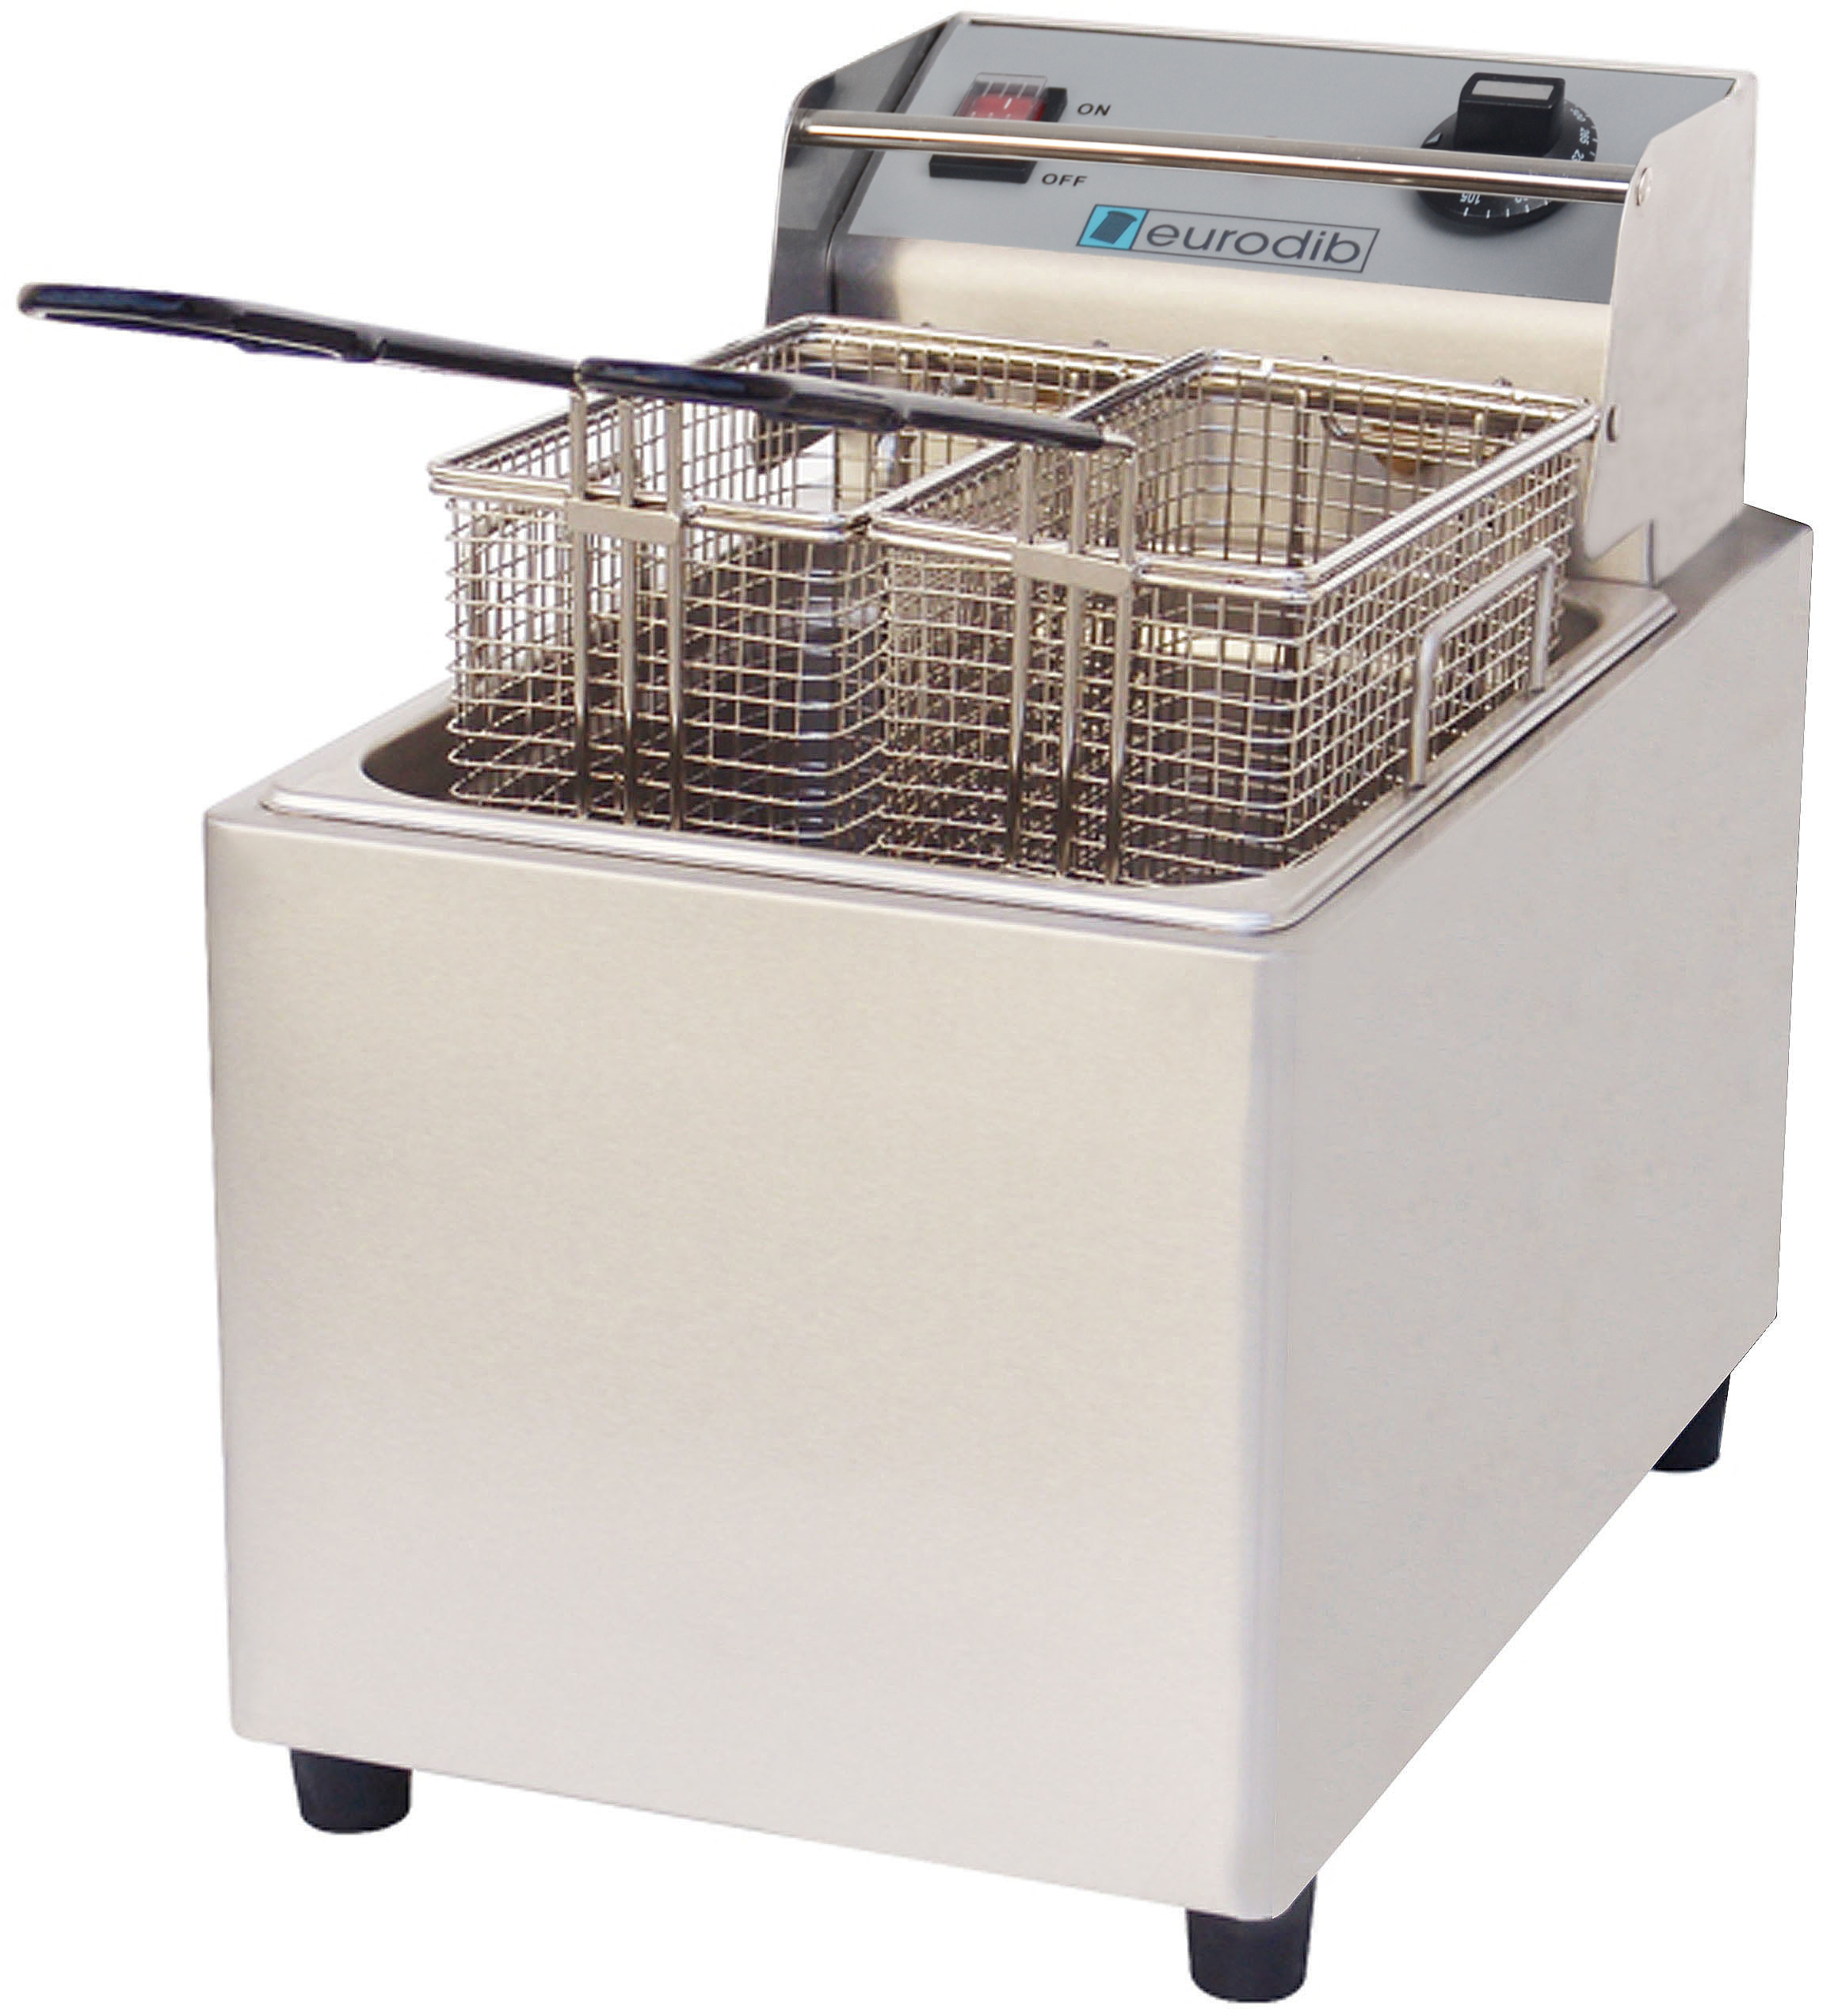 Eurodib USA SFE01860D single electric countertop fryer